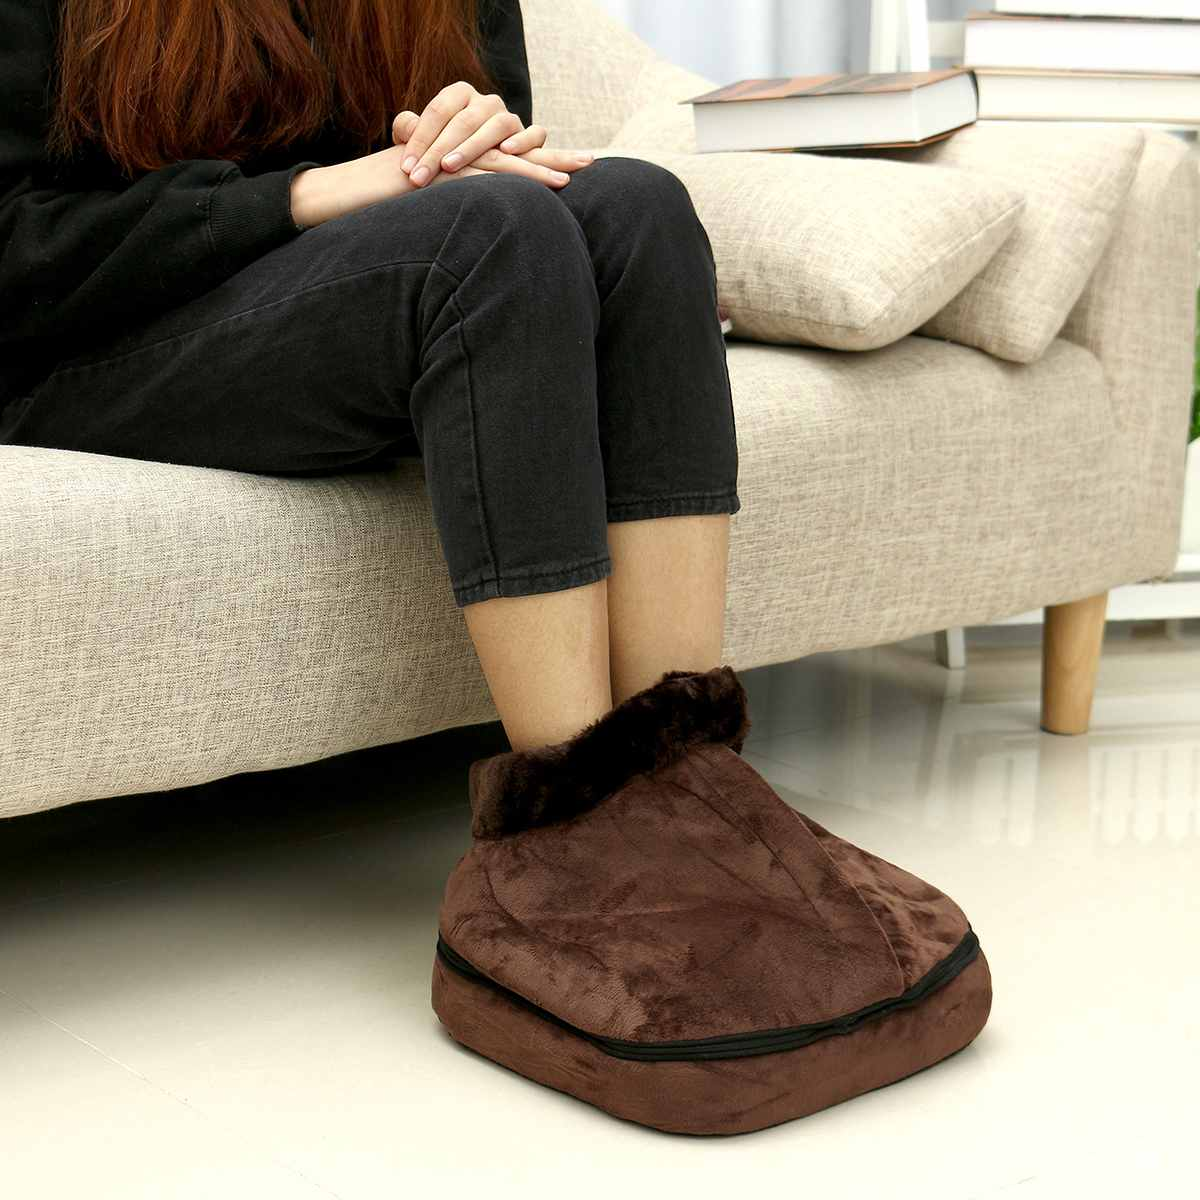 Foot Heat Massager 1